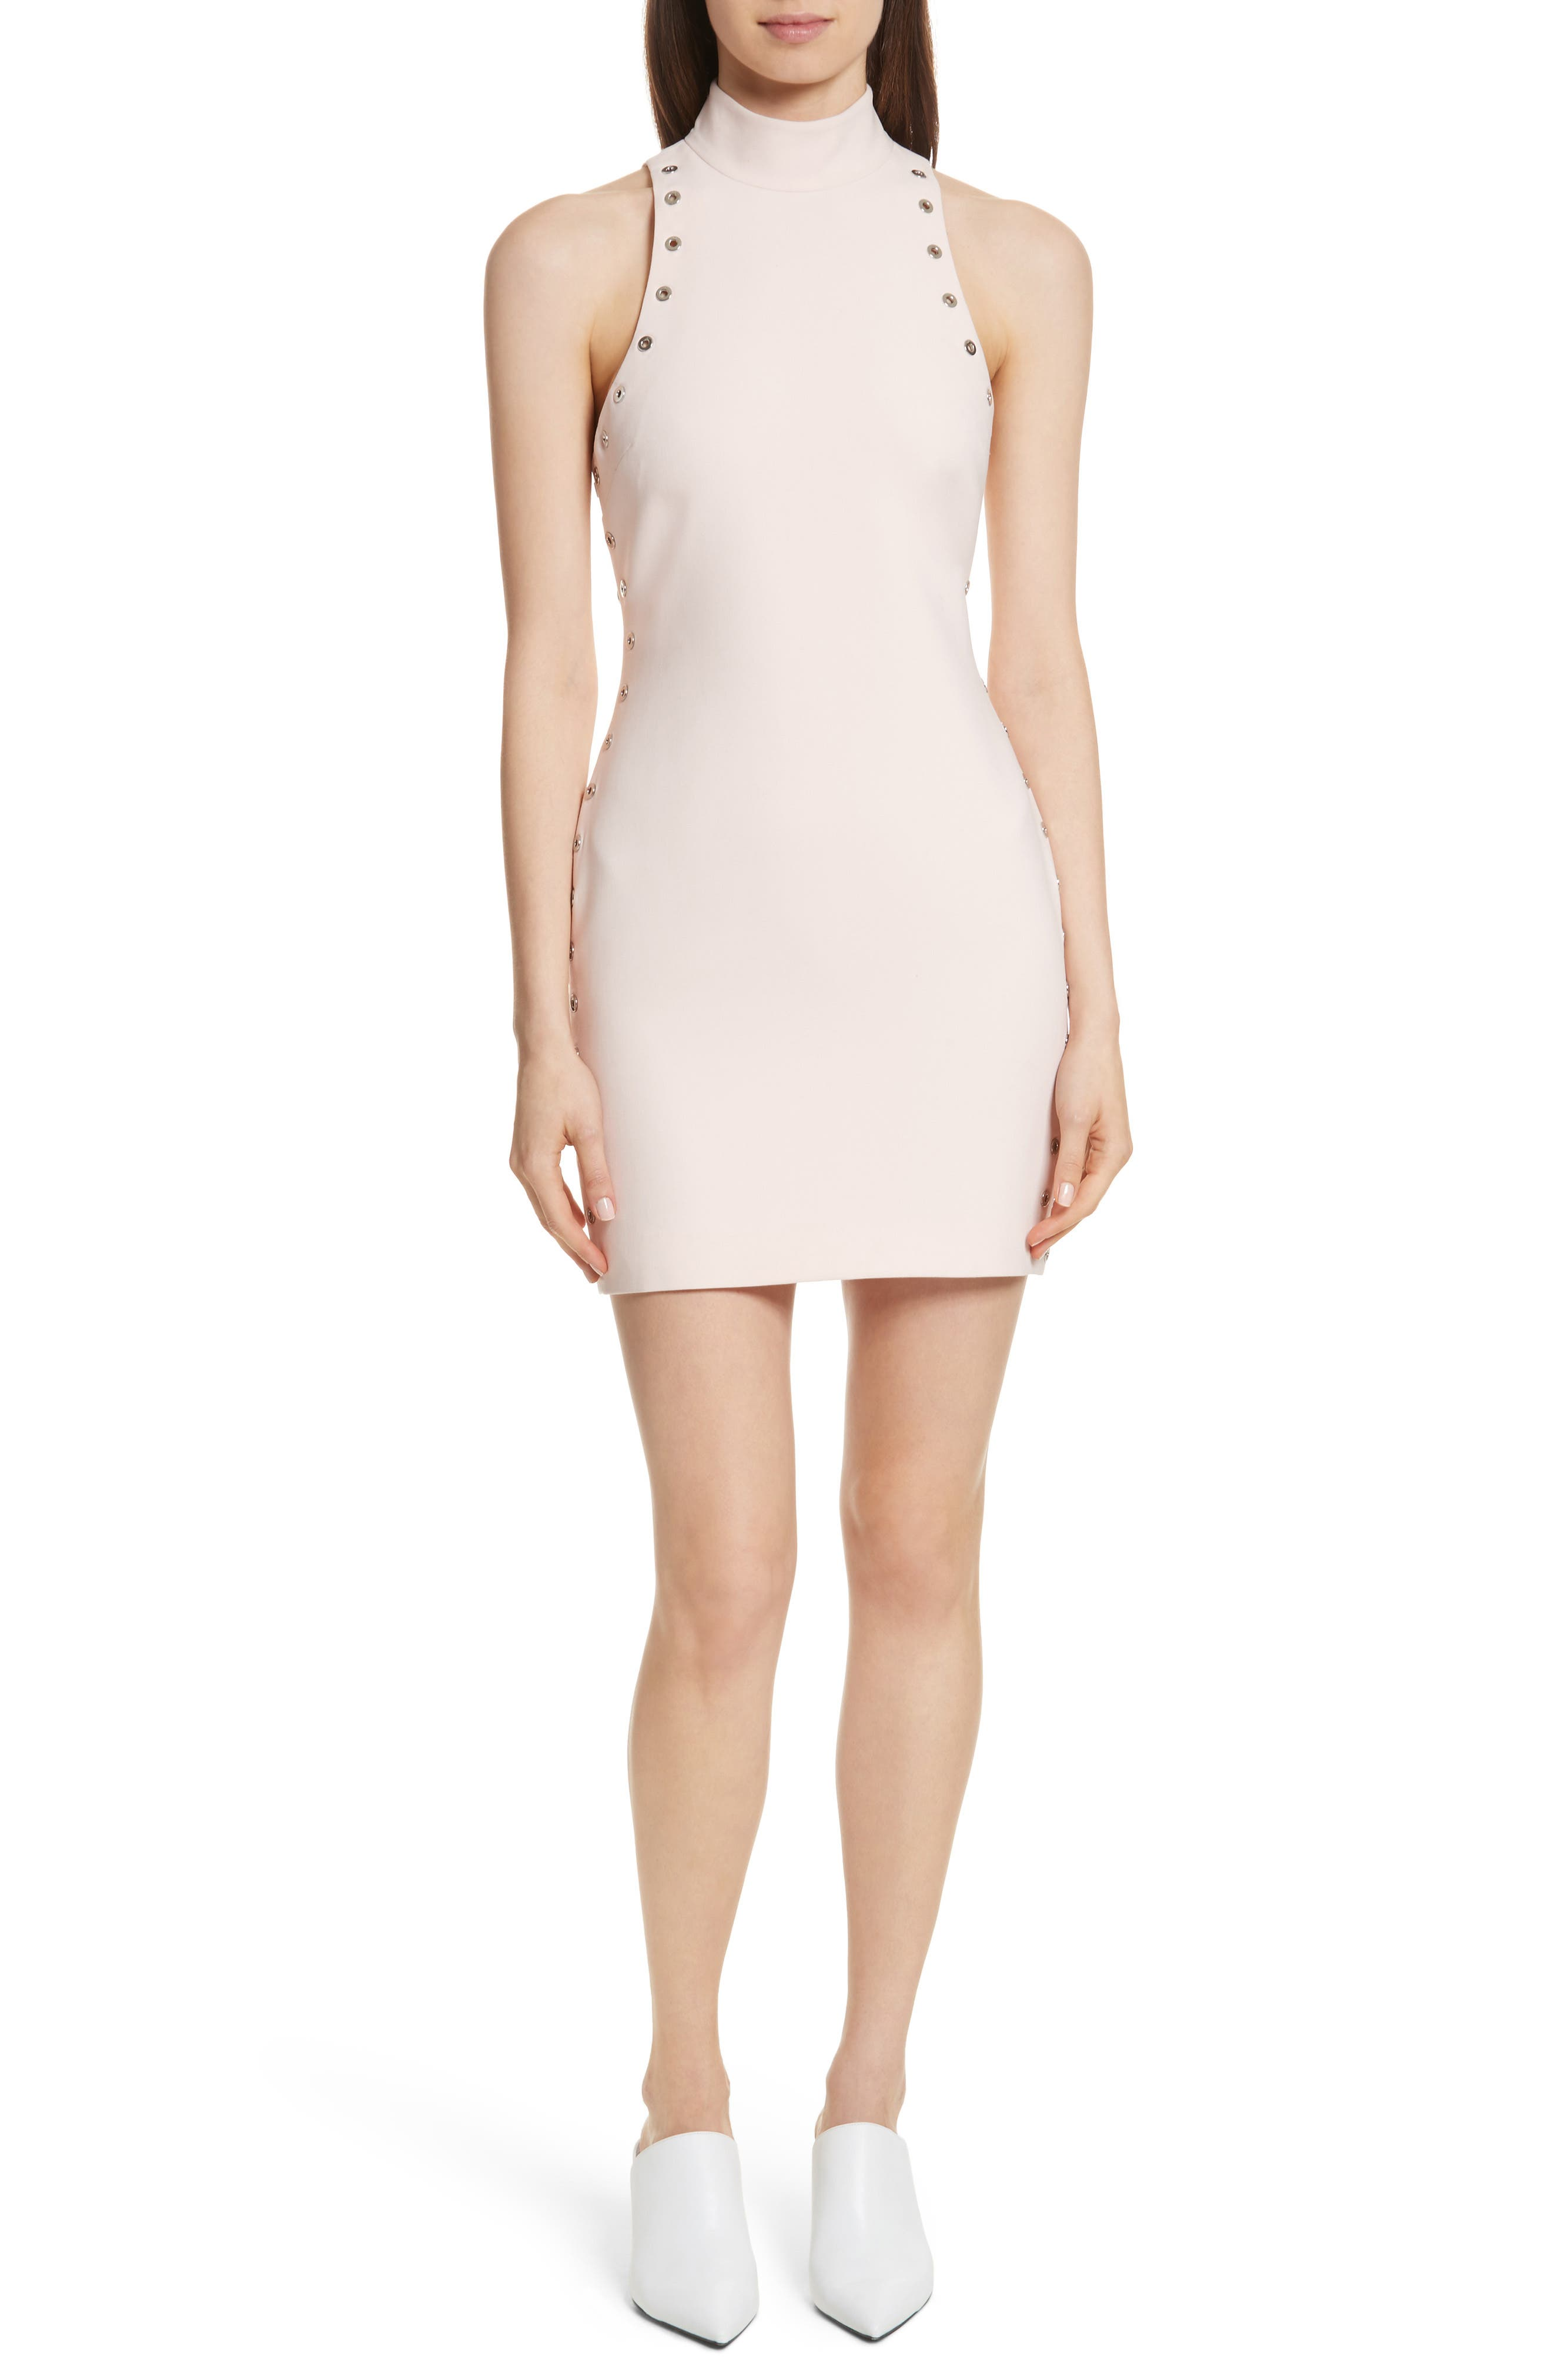 Ava Grommet Minidress,                             Main thumbnail 1, color,                             Pearl Blush